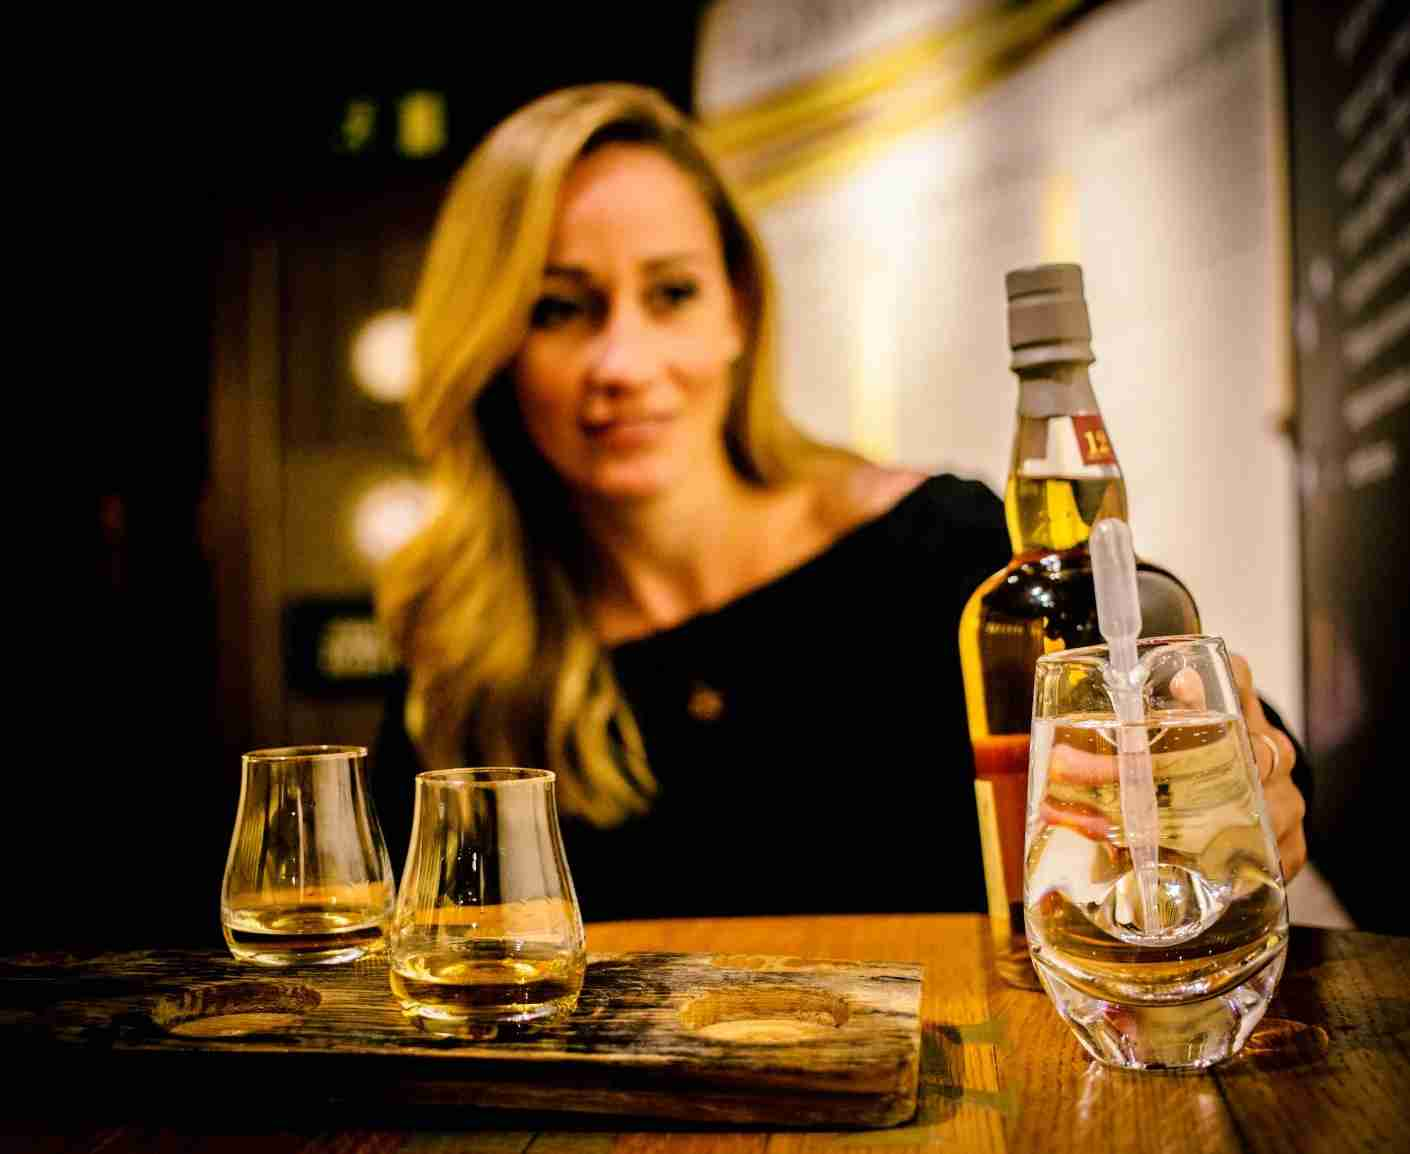 For just £5, you can sample a flight of whisky at Glenkinchie. Photo of the author courtesy of Jim Dean Photography.